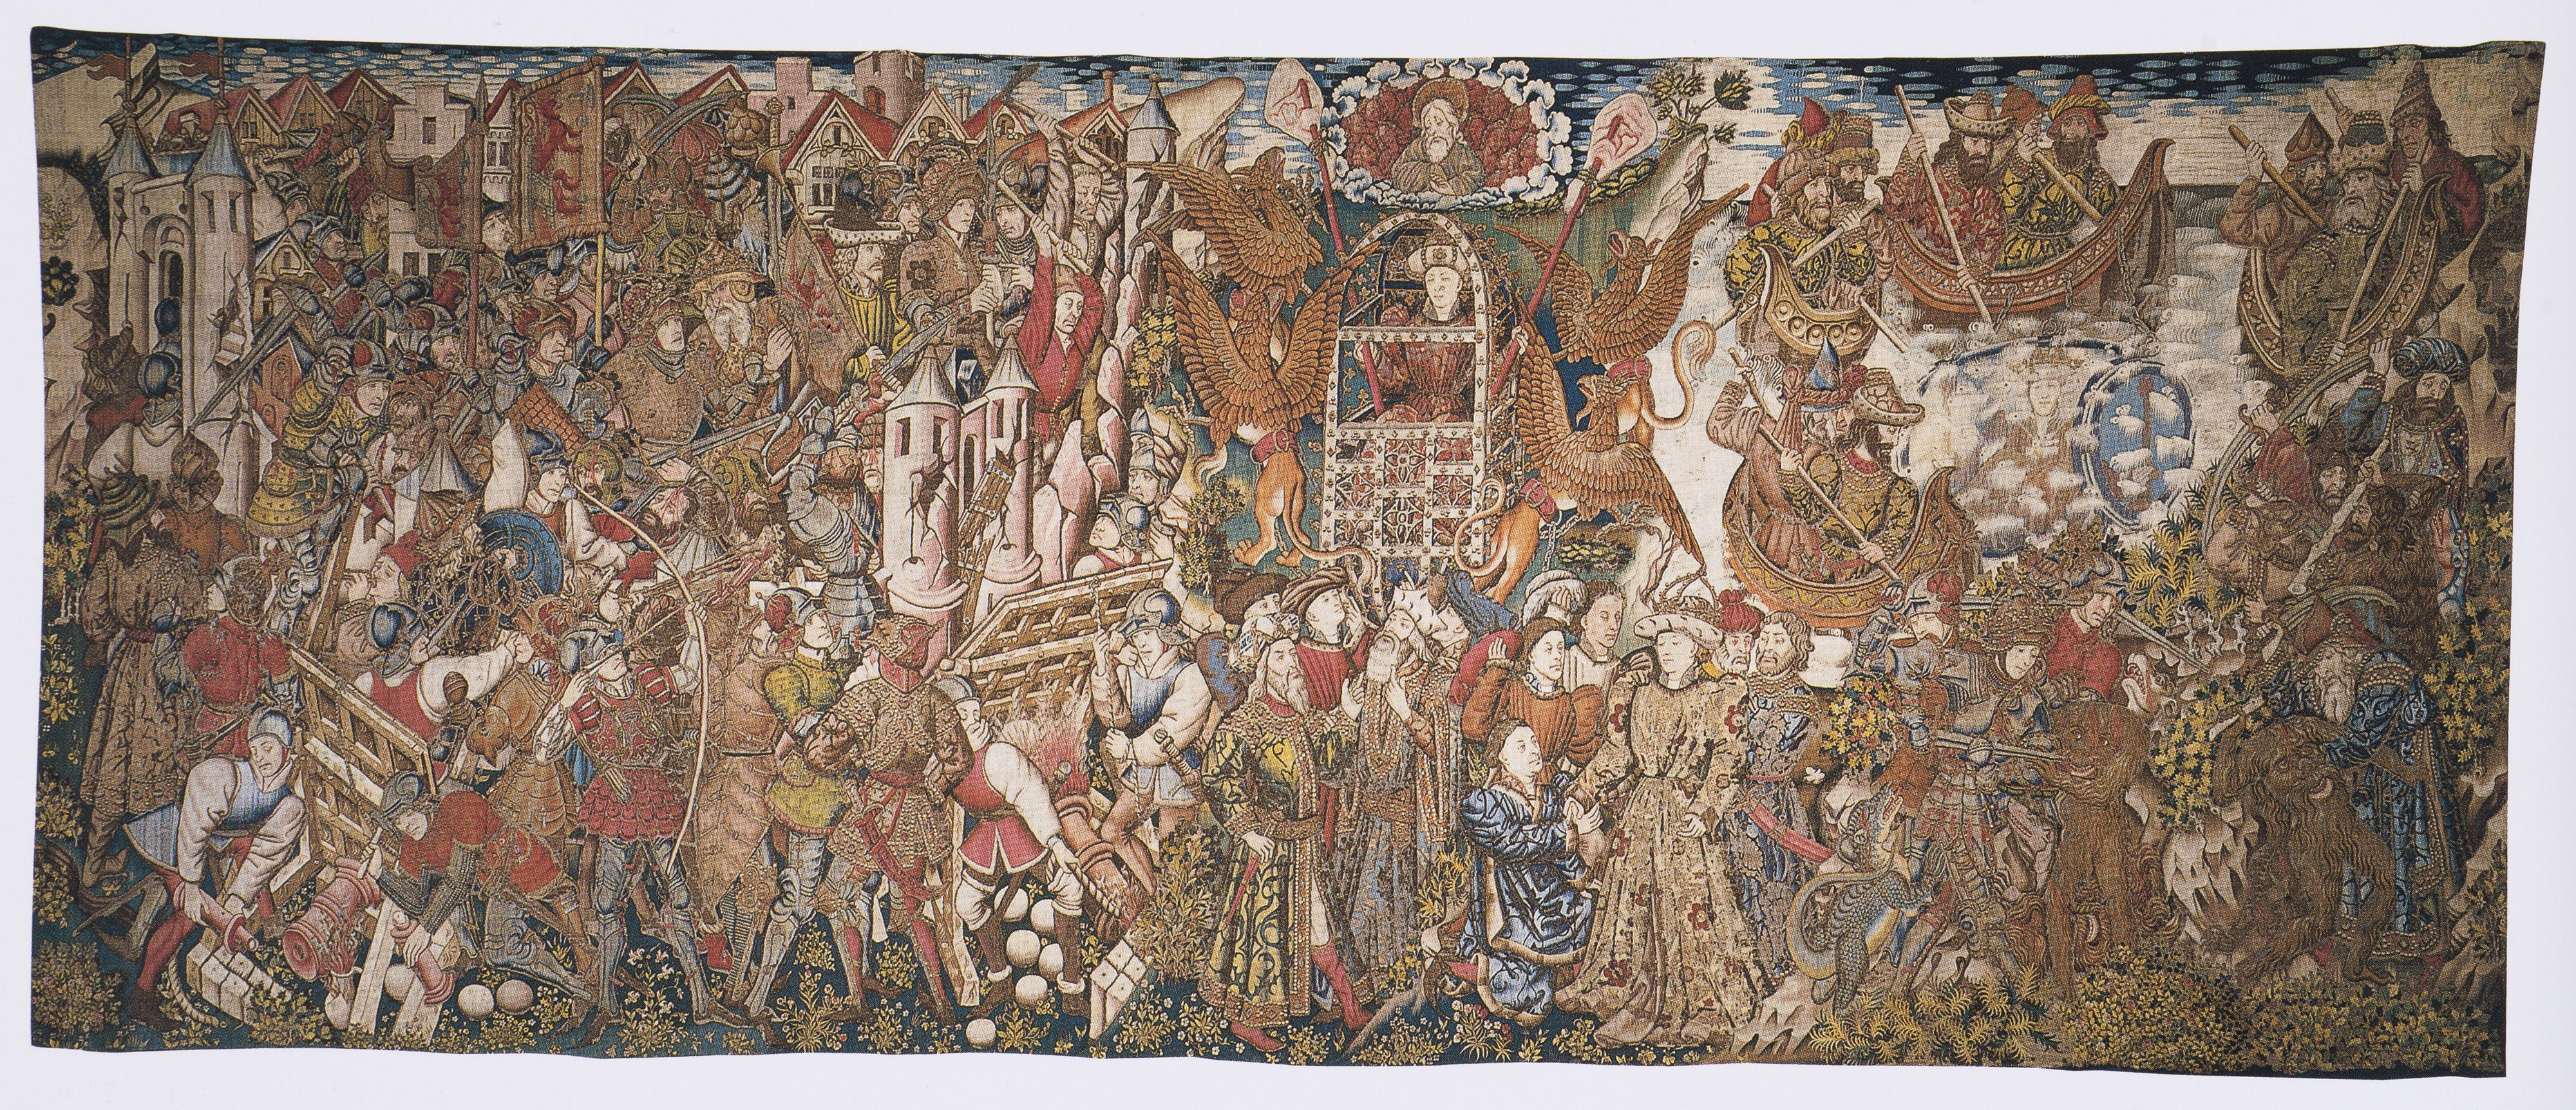 The Military Exploits and Fabulous Deeds of Alexander, Tapestry from the Set Story of Alexander, Tournai (?), ca. 1455-1460, Wool, Silk, Gilt-metal-wrapped Thread, 415x985 cm, Genoa, Palazzo Doria